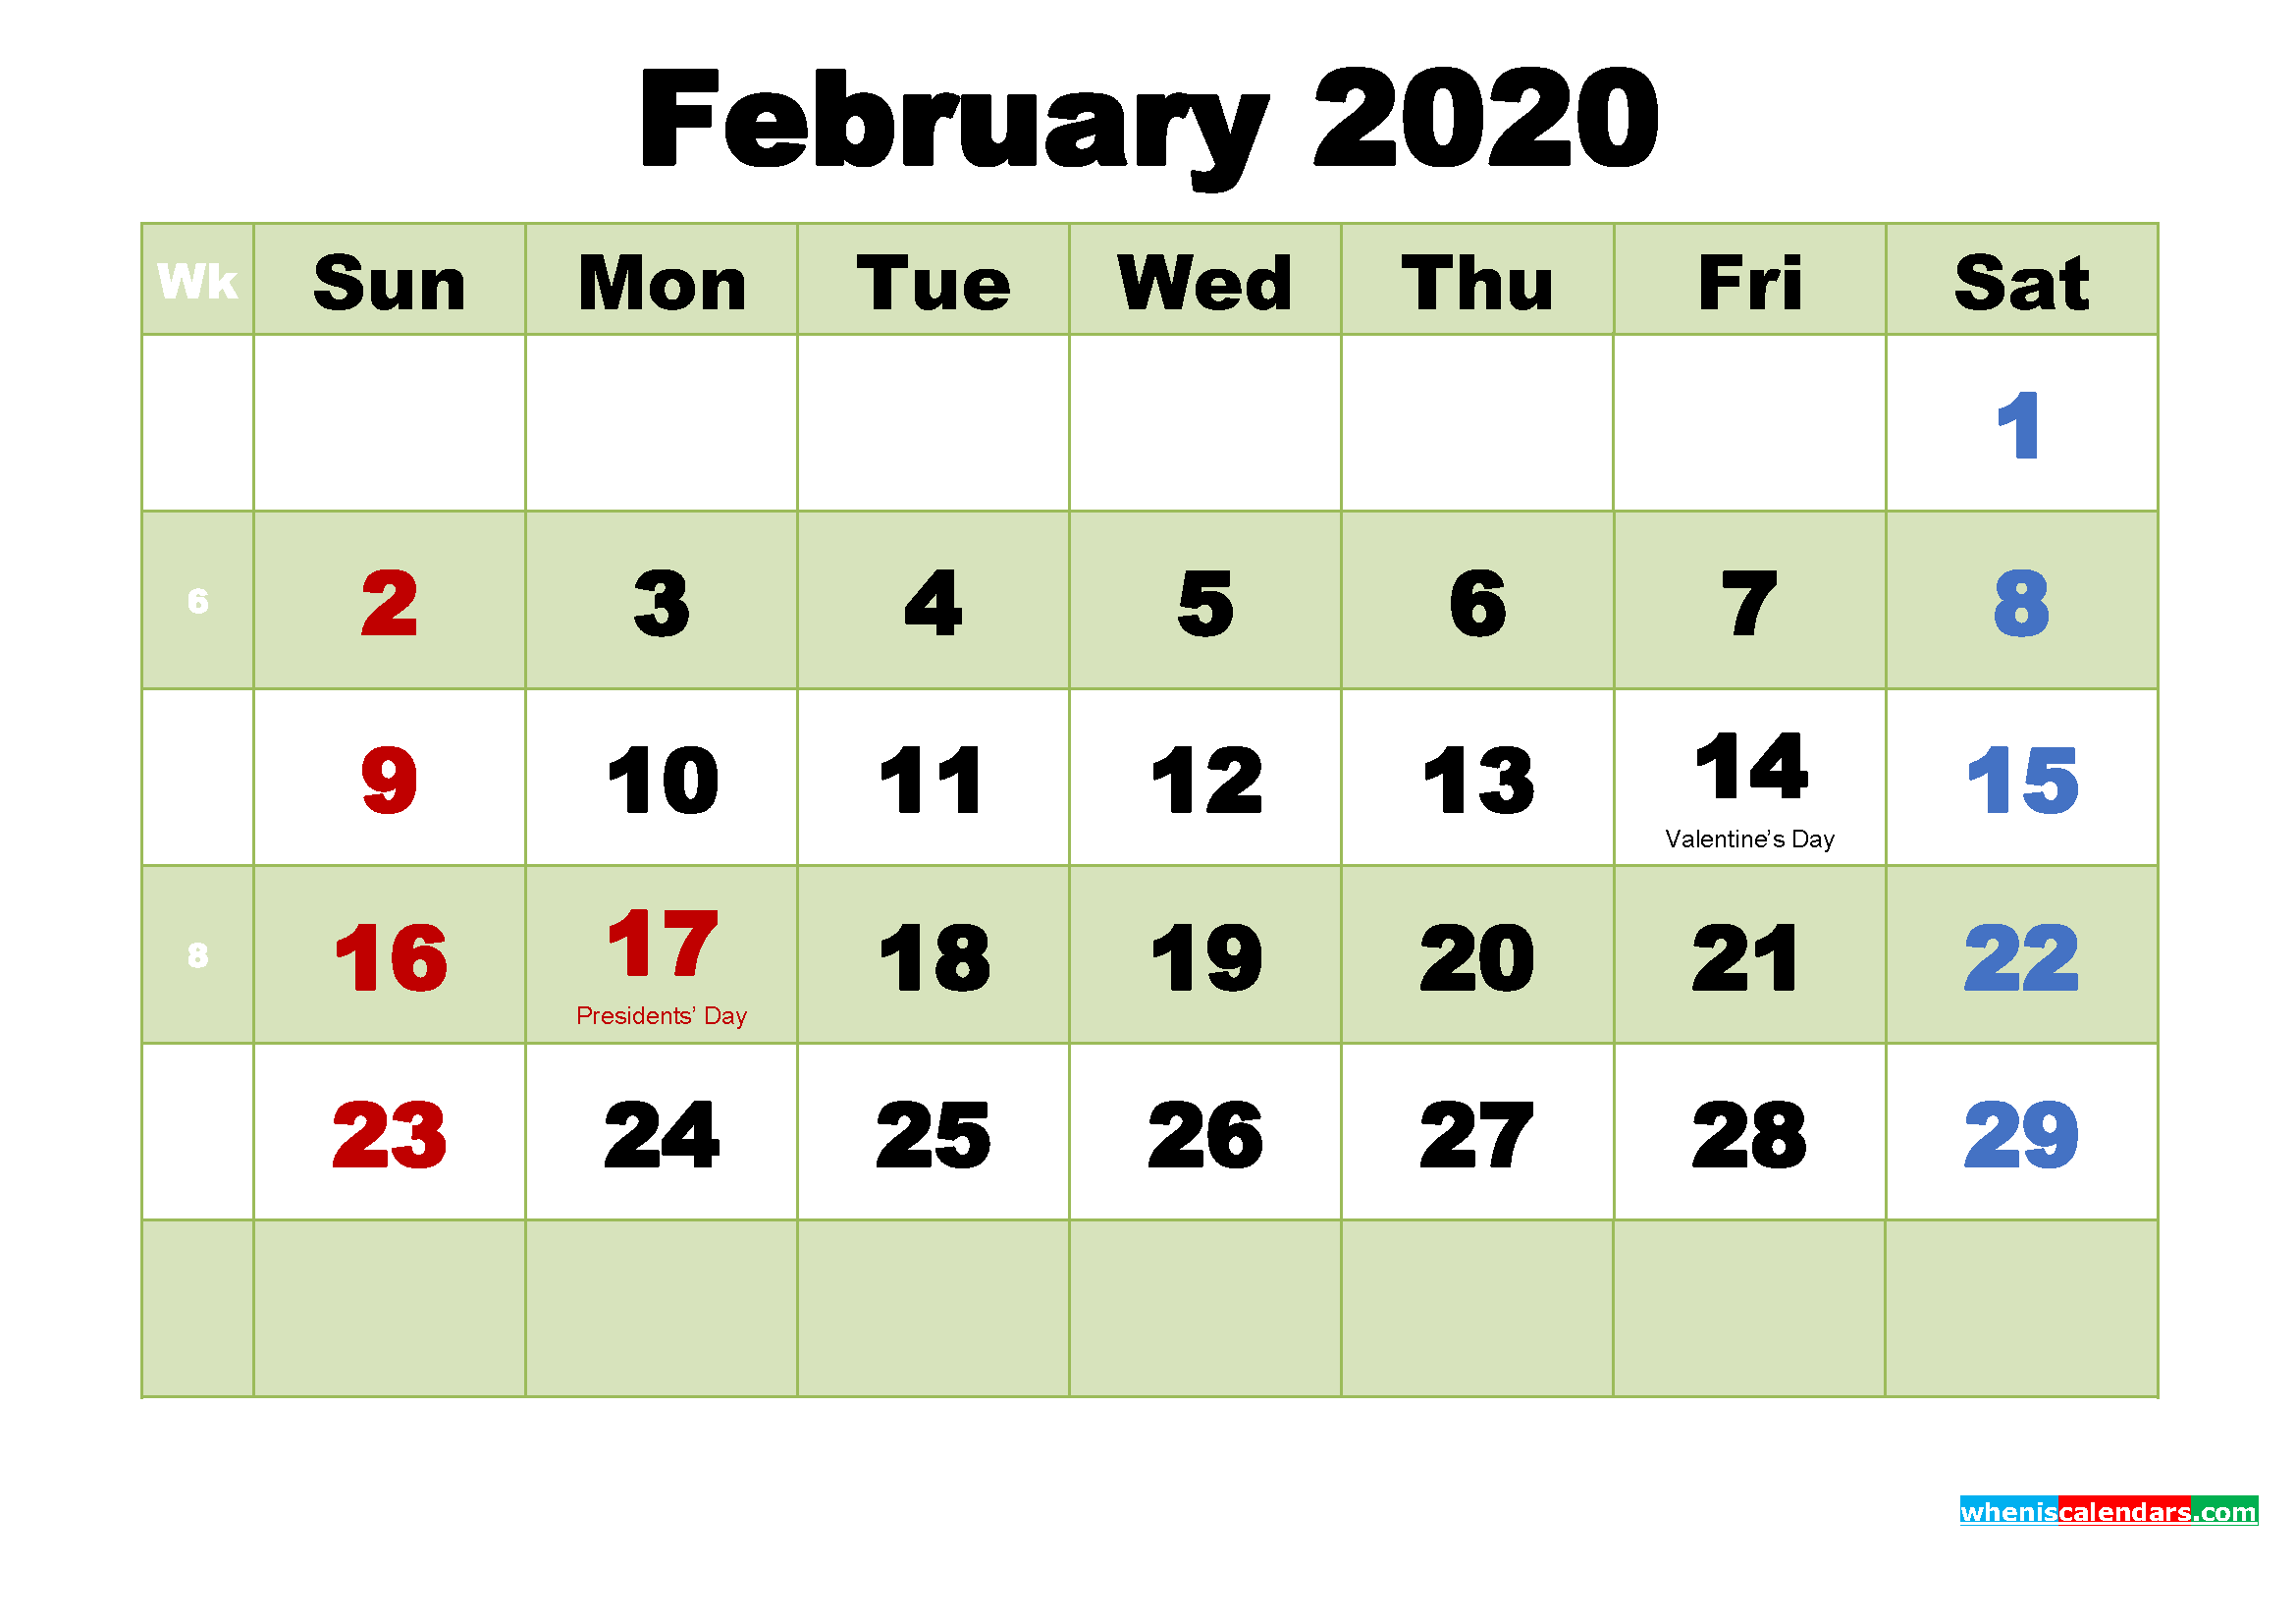 Printable 2020 Calendar by Month February